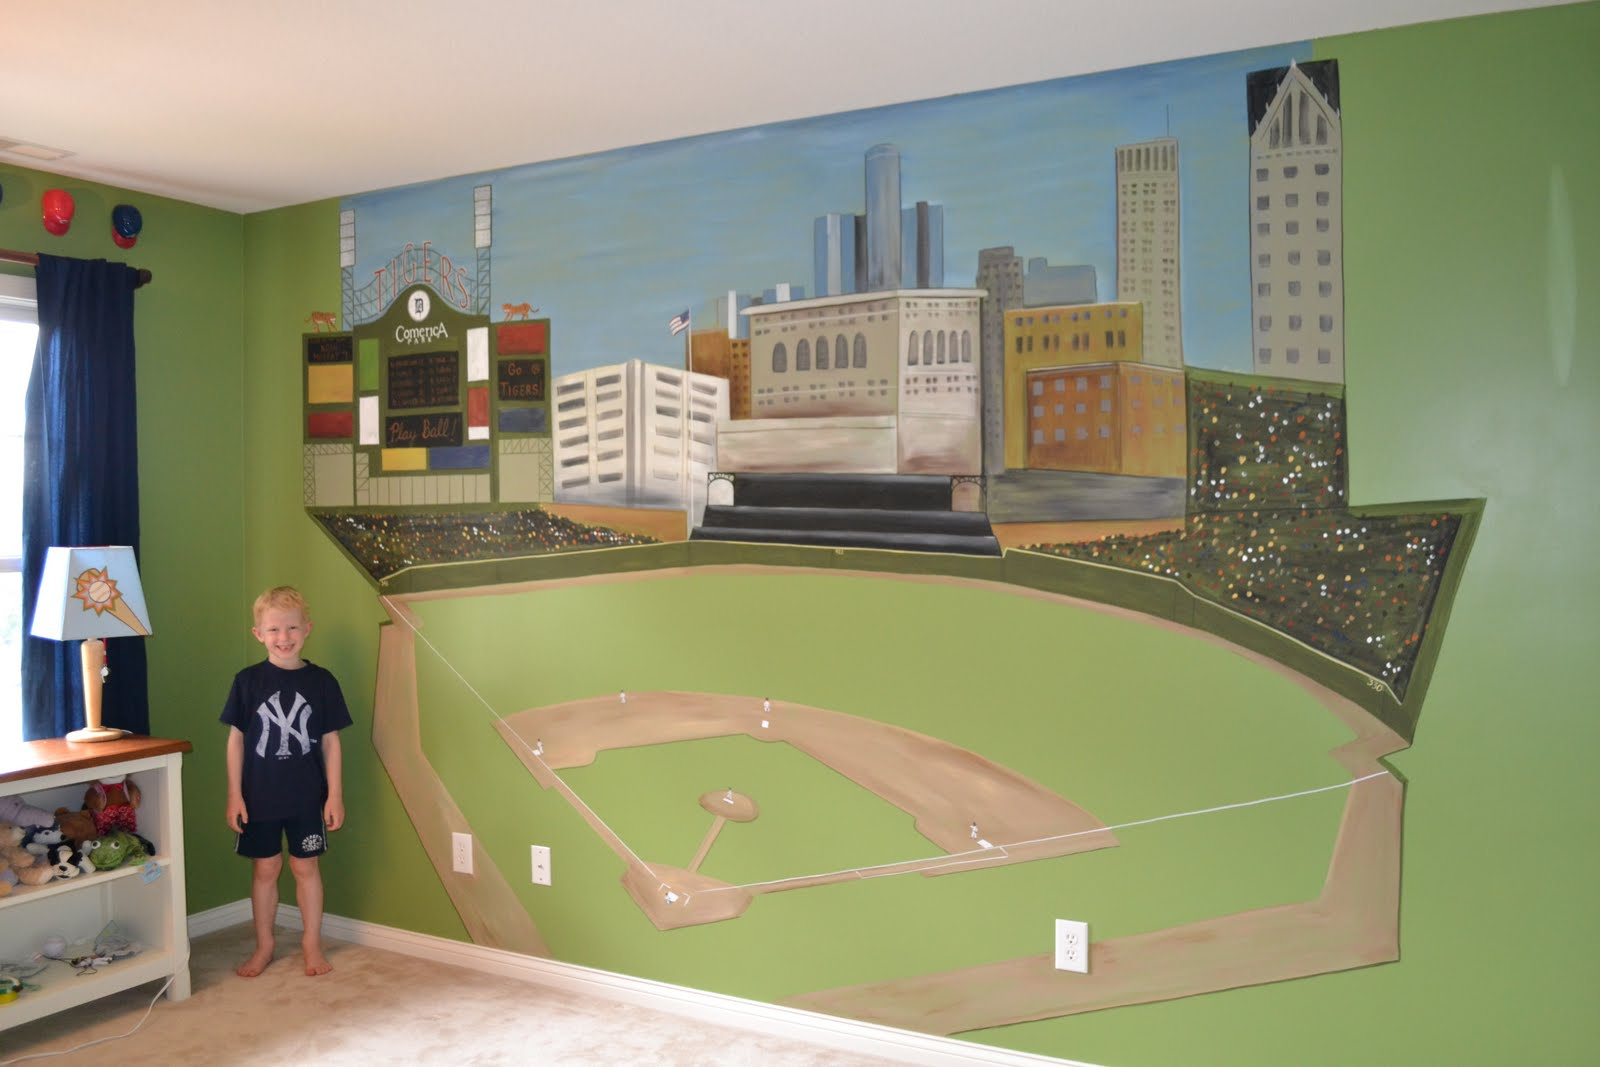 Stadium Wall Mural Images Home Decoration Ideas